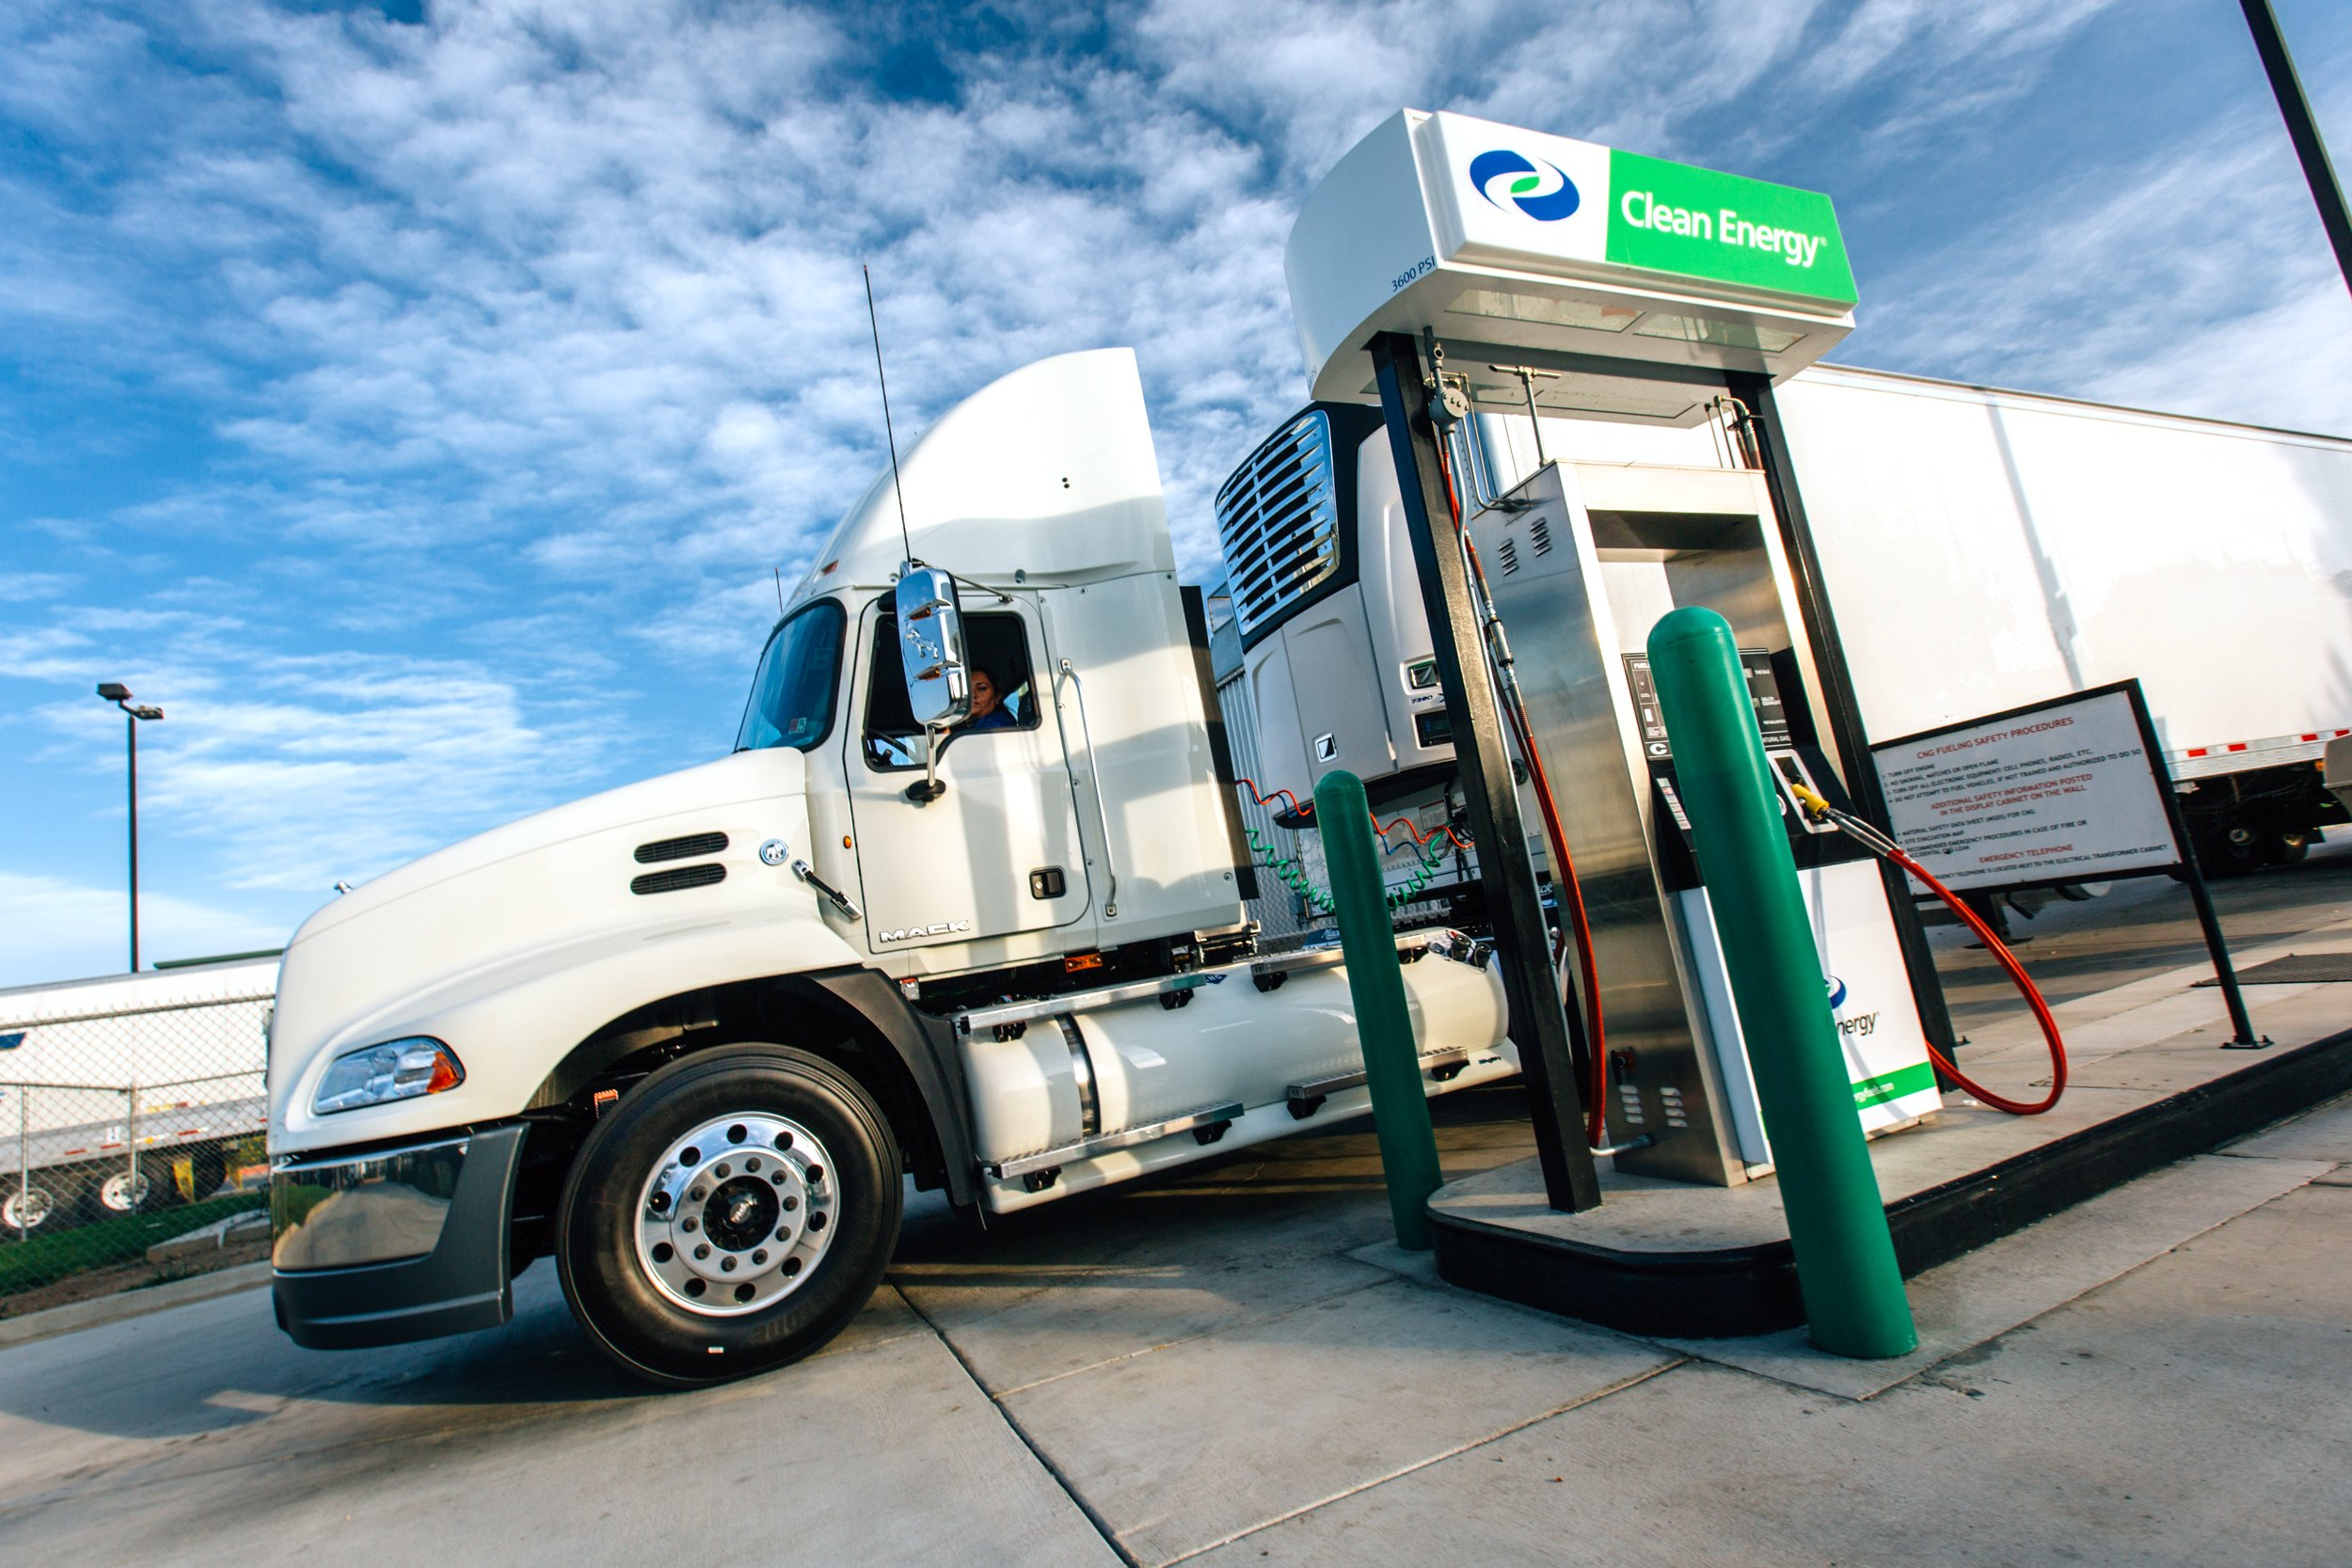 Greener Fuels on the Way to Zero Emissions